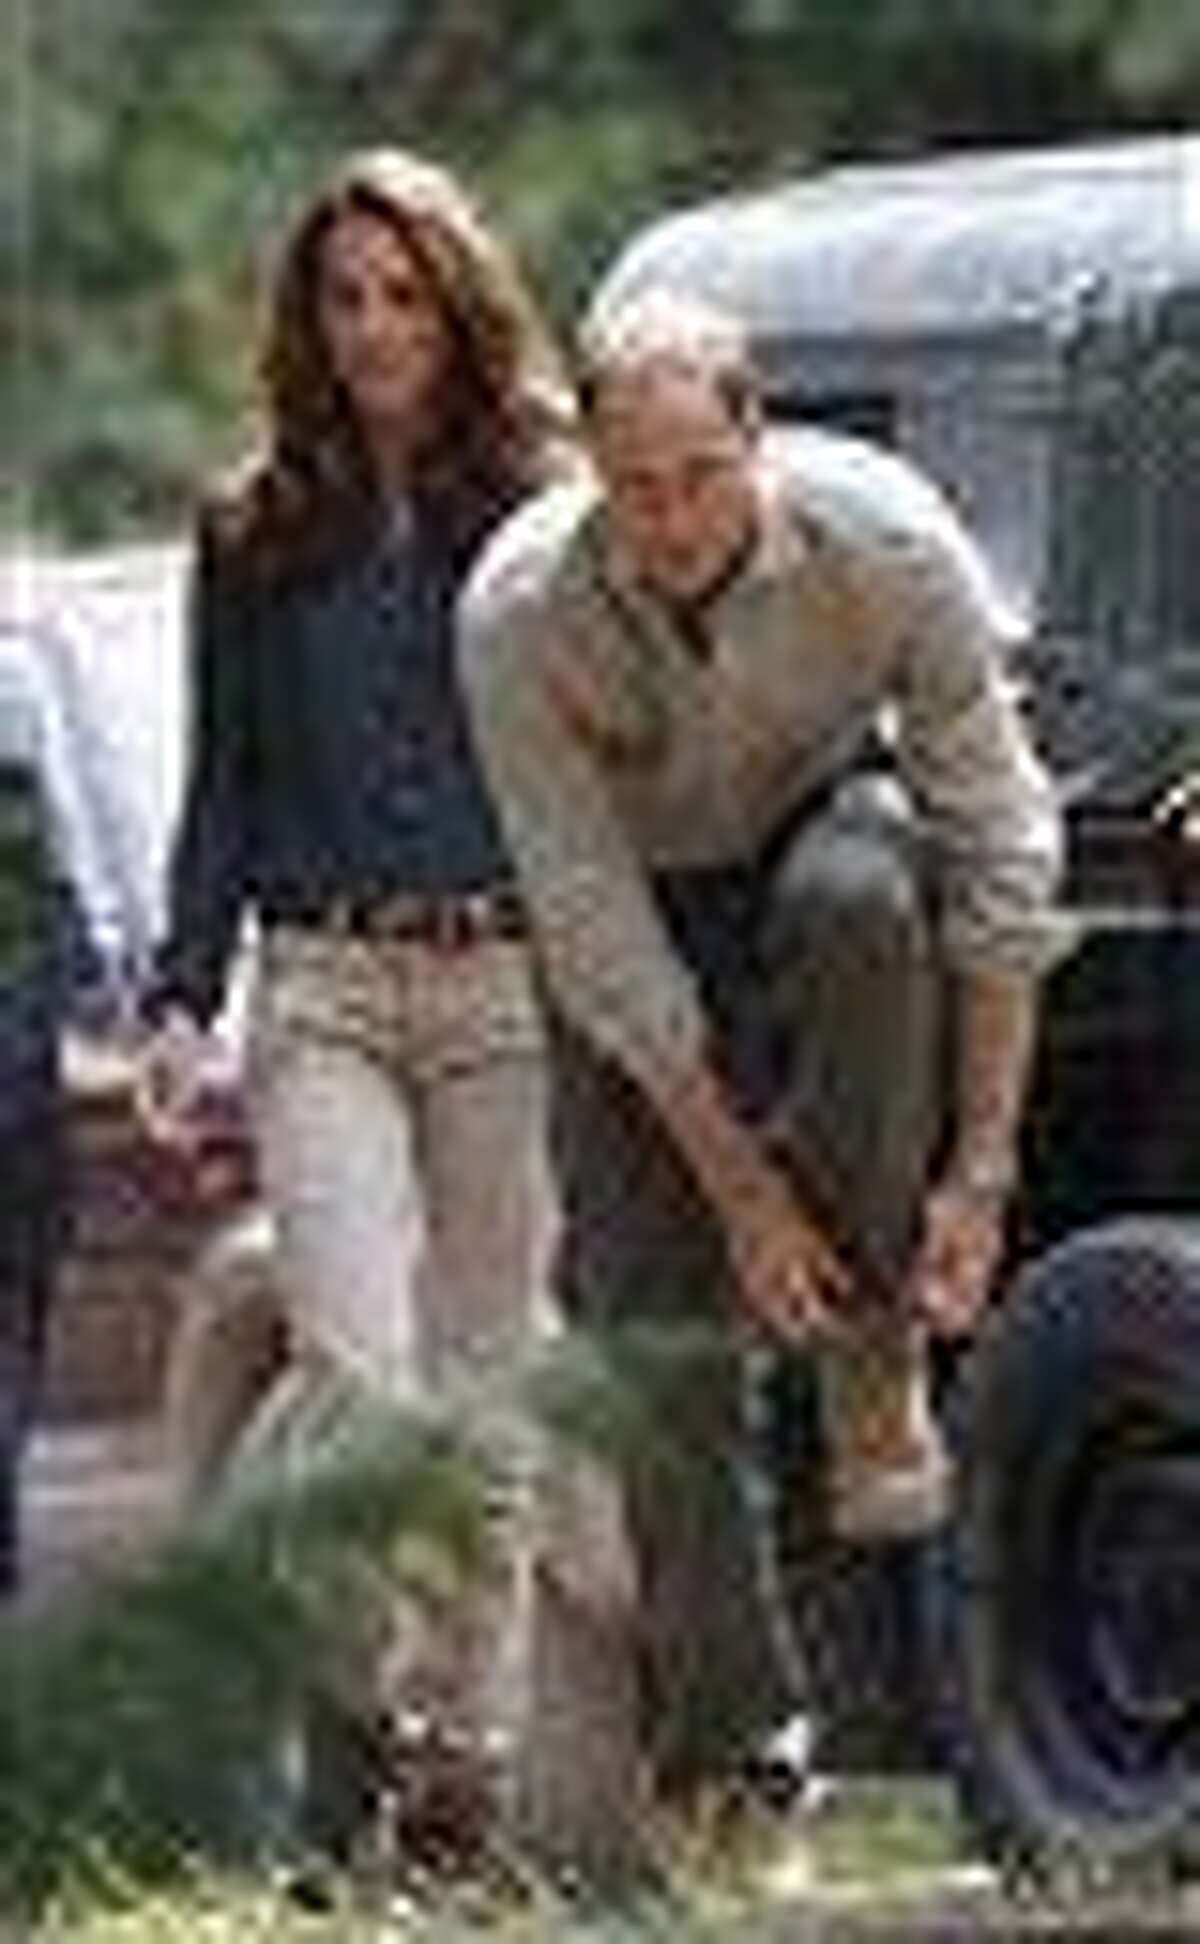 Prince William and his wife Kate, the Duke and Duchess of Cambridge arrive at Danum Valley Research Center in Danum Valley, Sabab, Malaysia, Saturday.